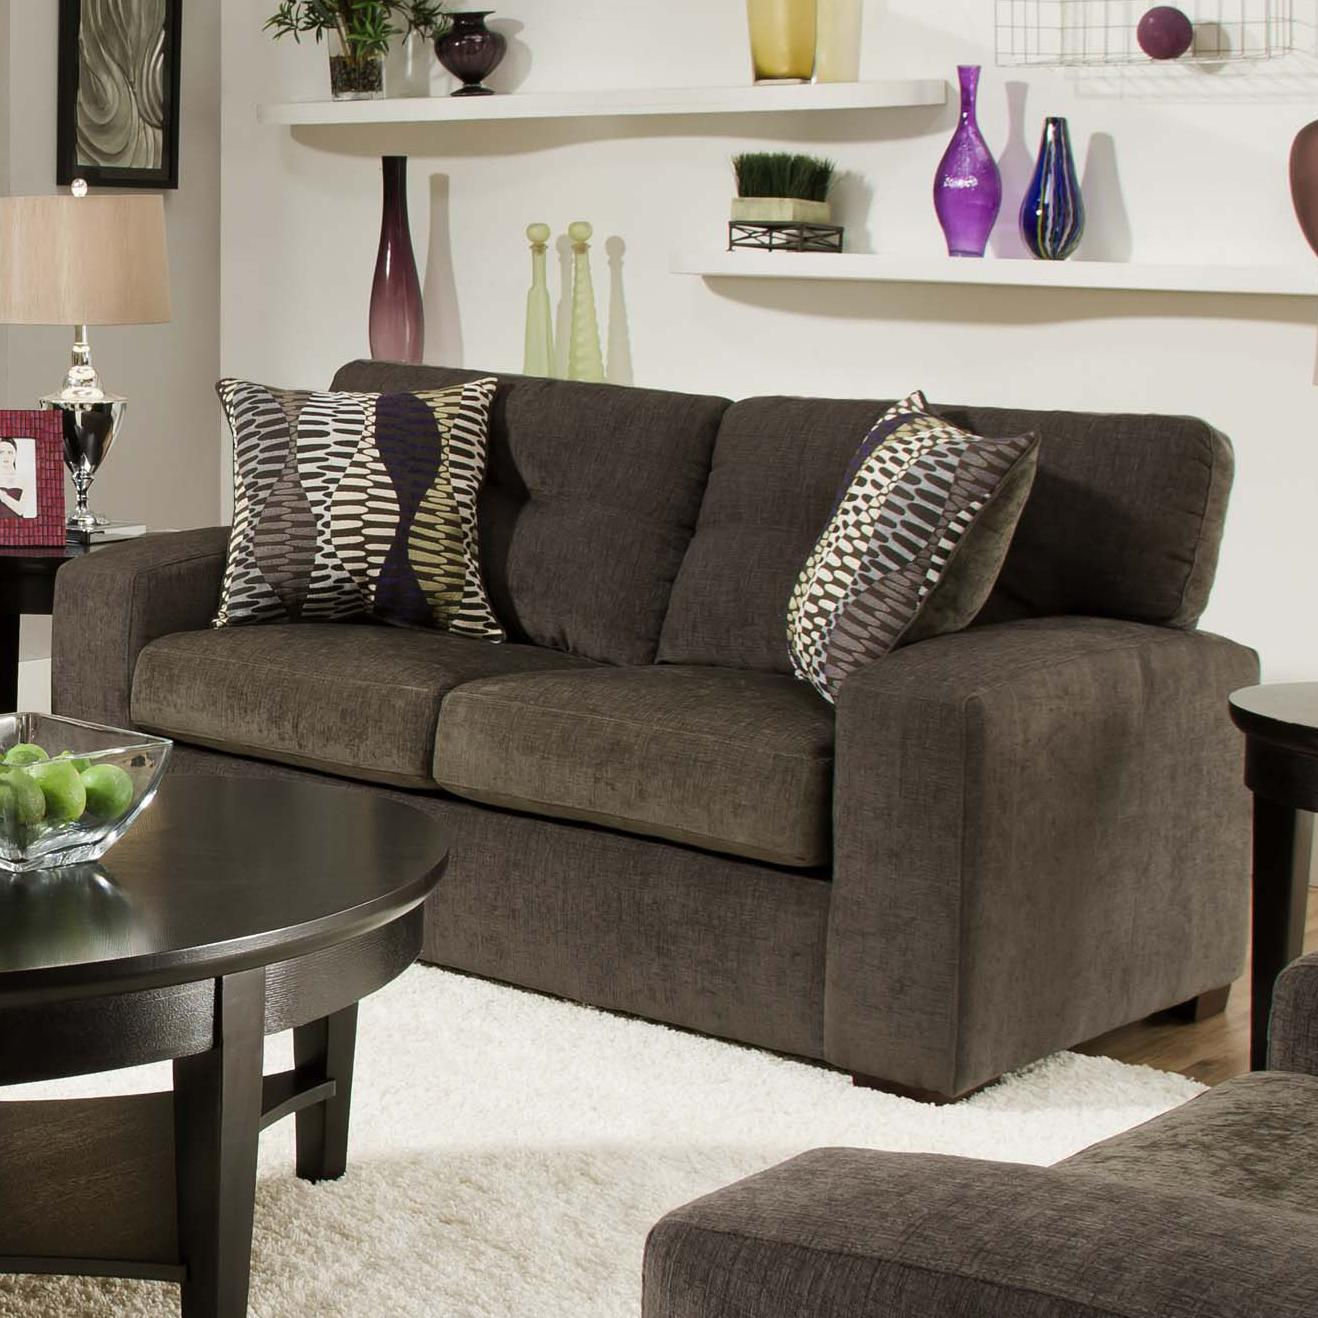 Furniture upholstery group bay city saginaw - American Furniture 5100 Group Loveseat Item Number 5102 3430